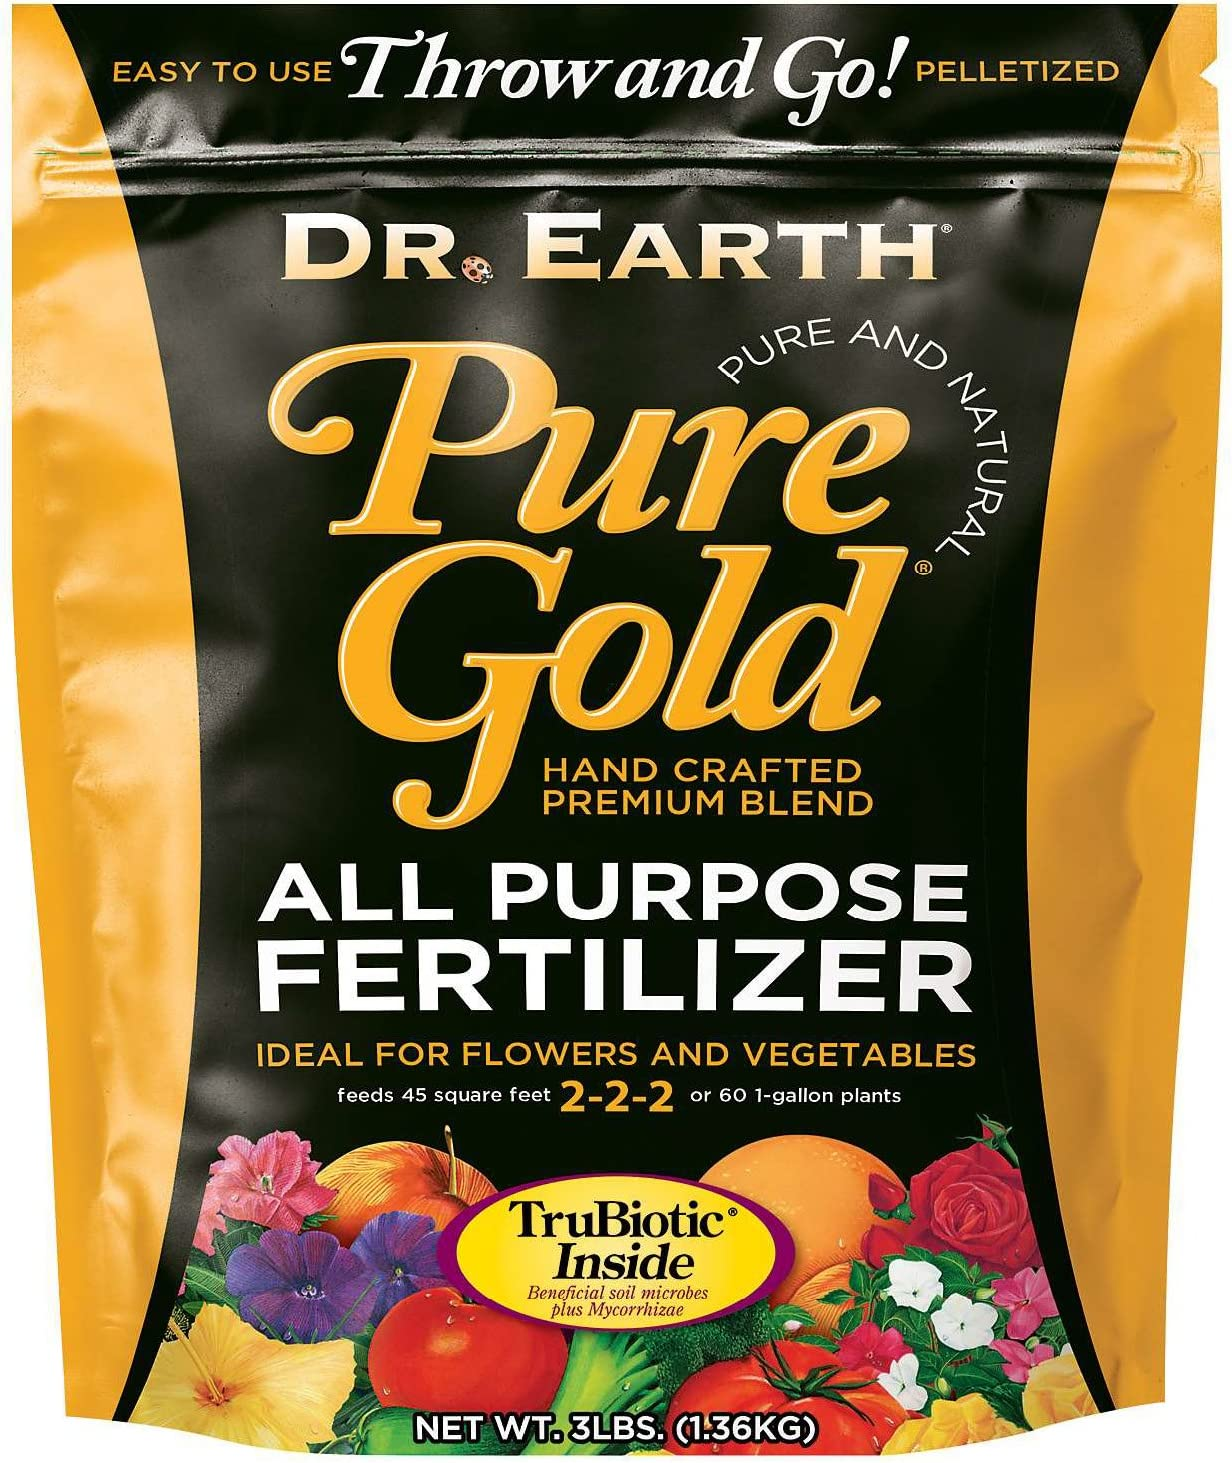 Dr. Earth Pure Gold All Purpose Fertilizer 3 lb